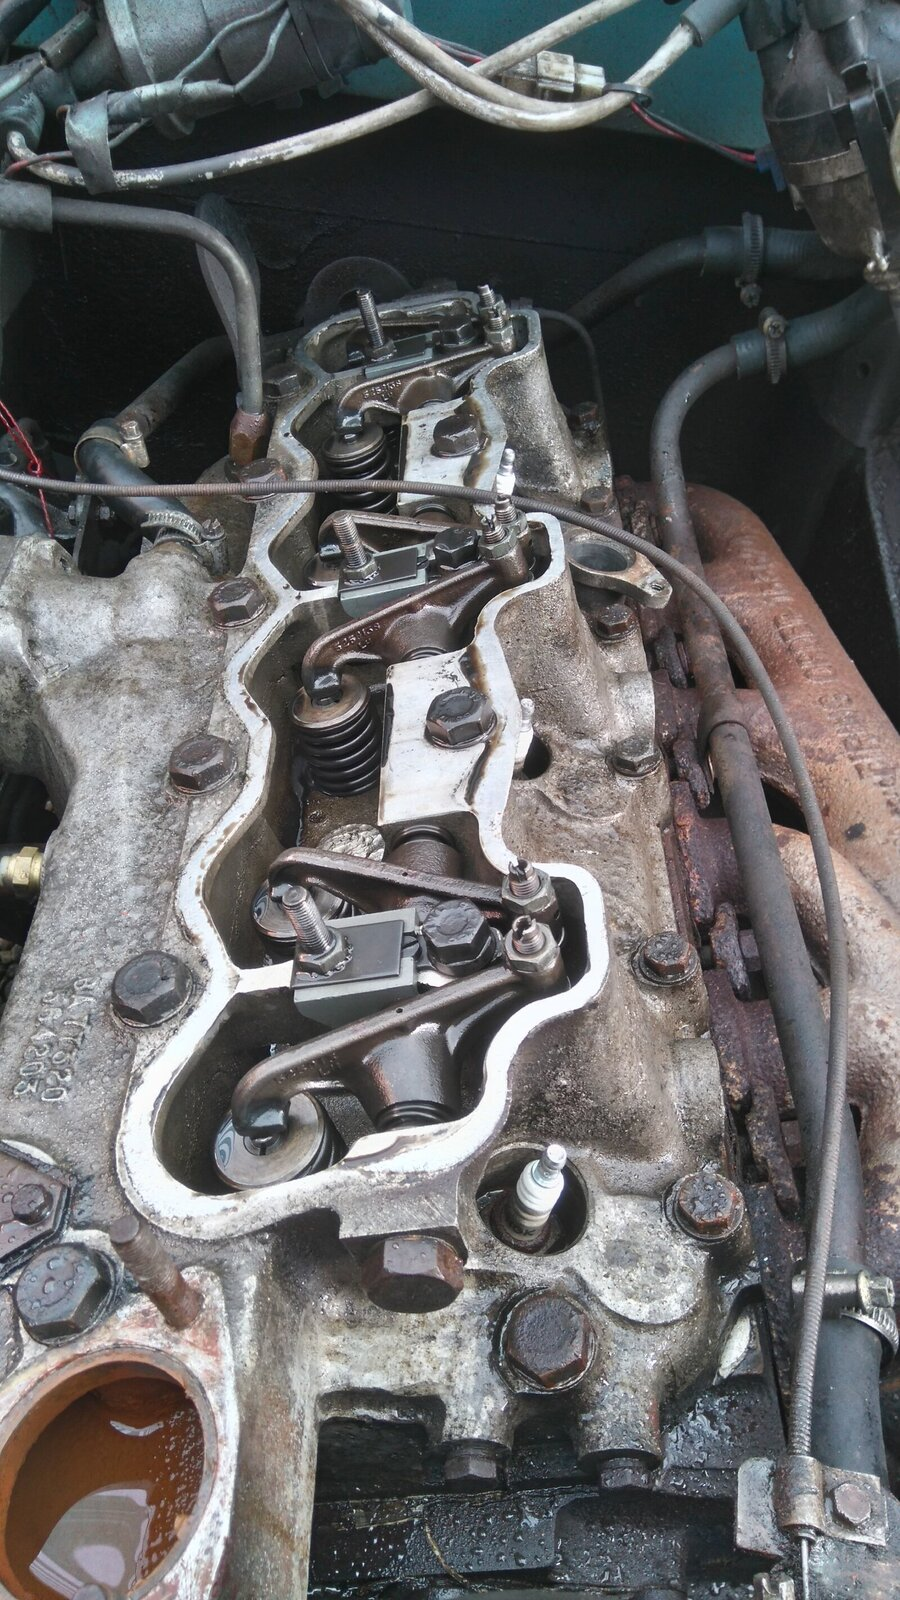 Series 3 2 6 6 cyl cylinder head gasket replacement